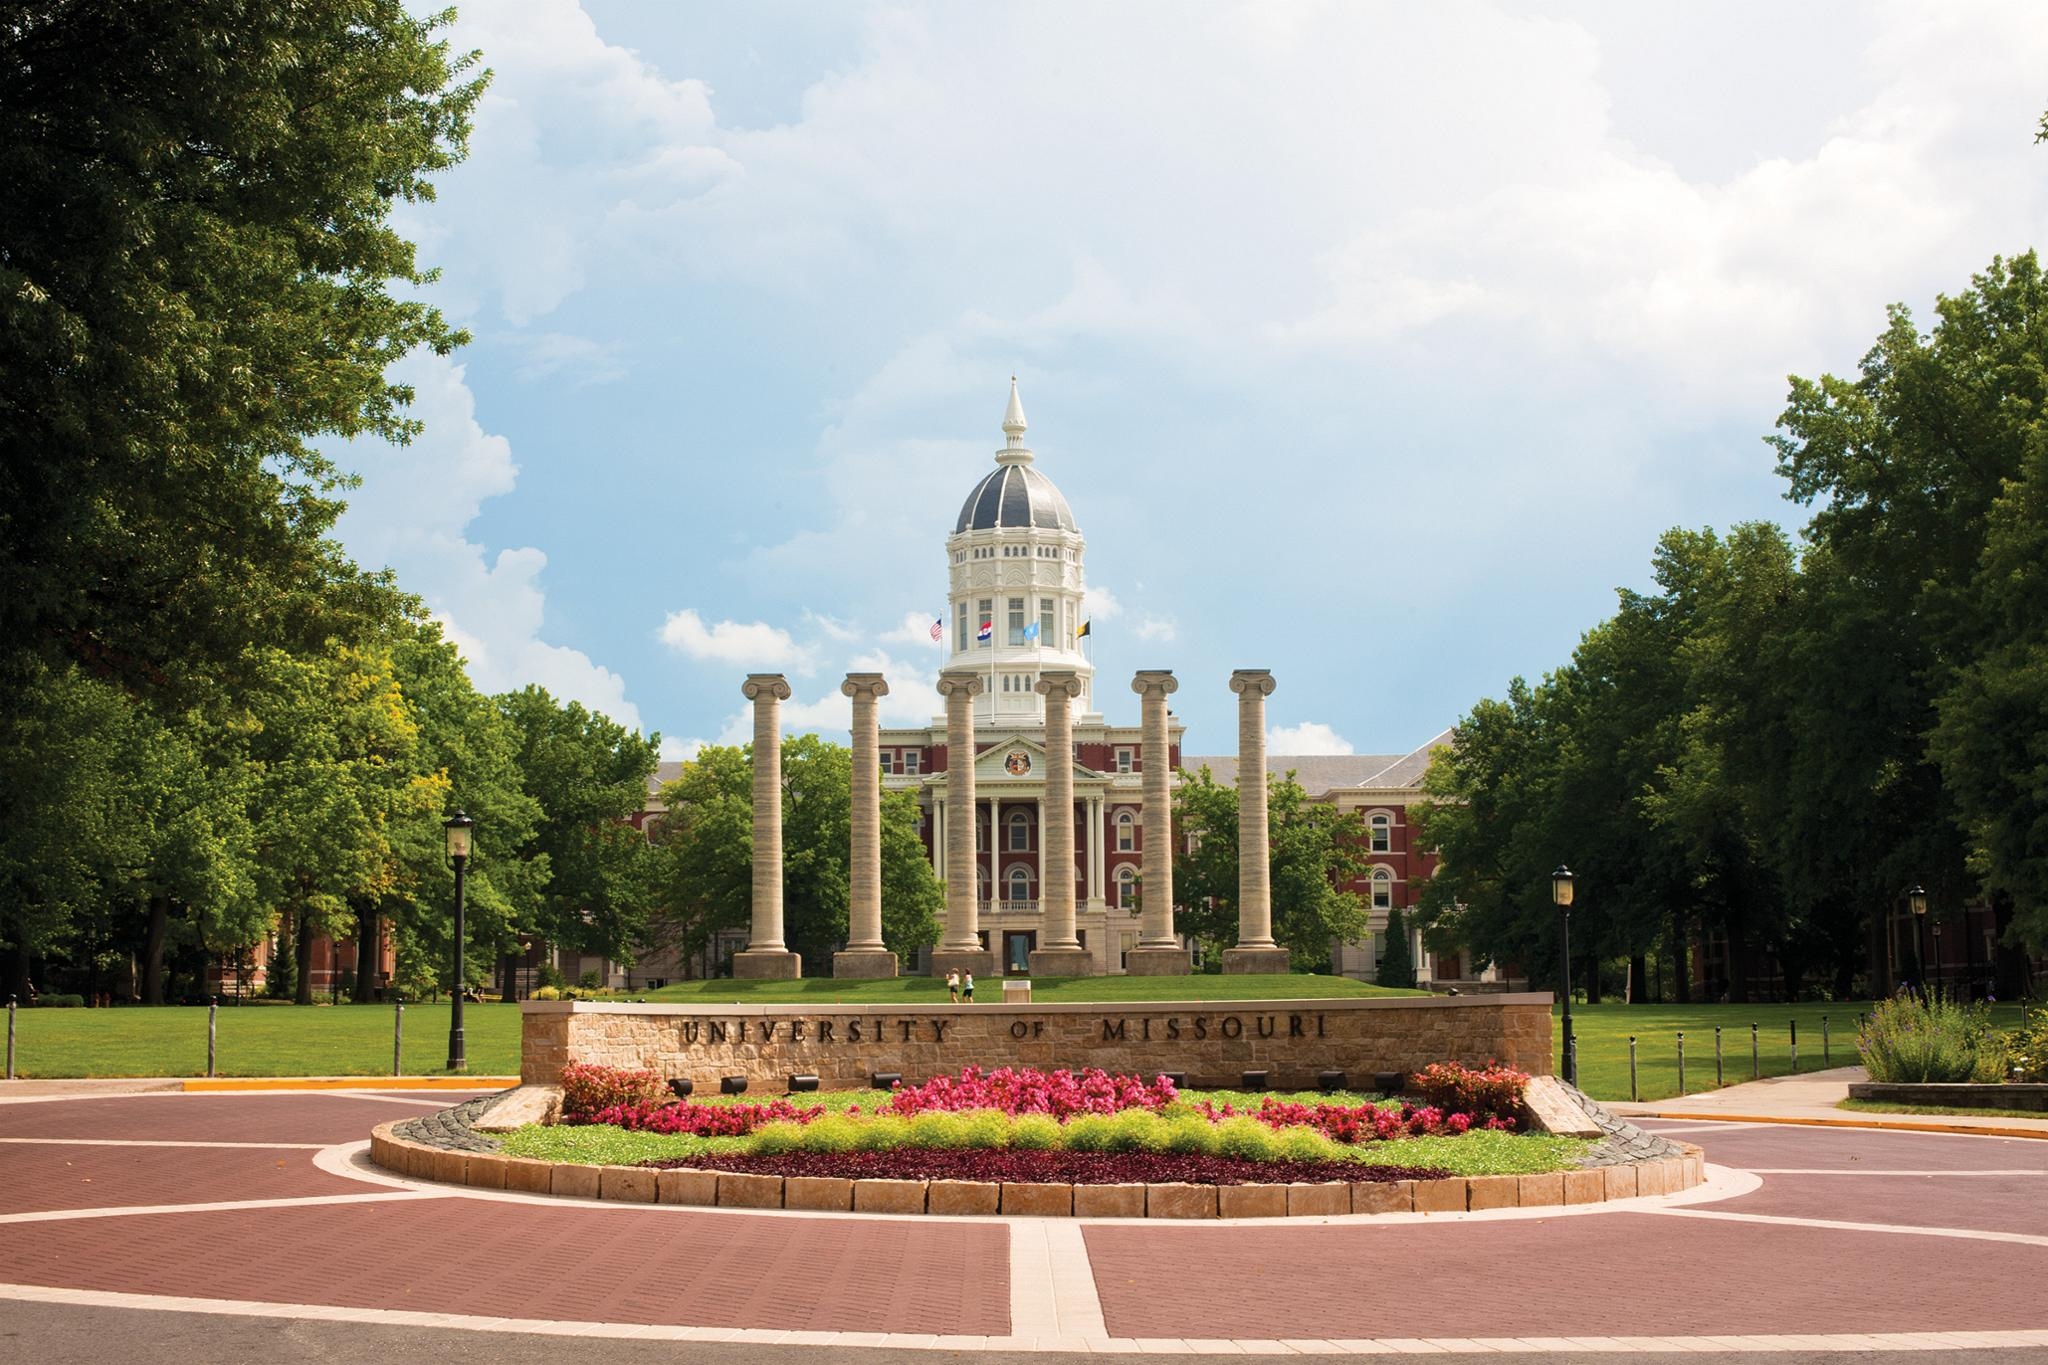 Campus of University of Missouri